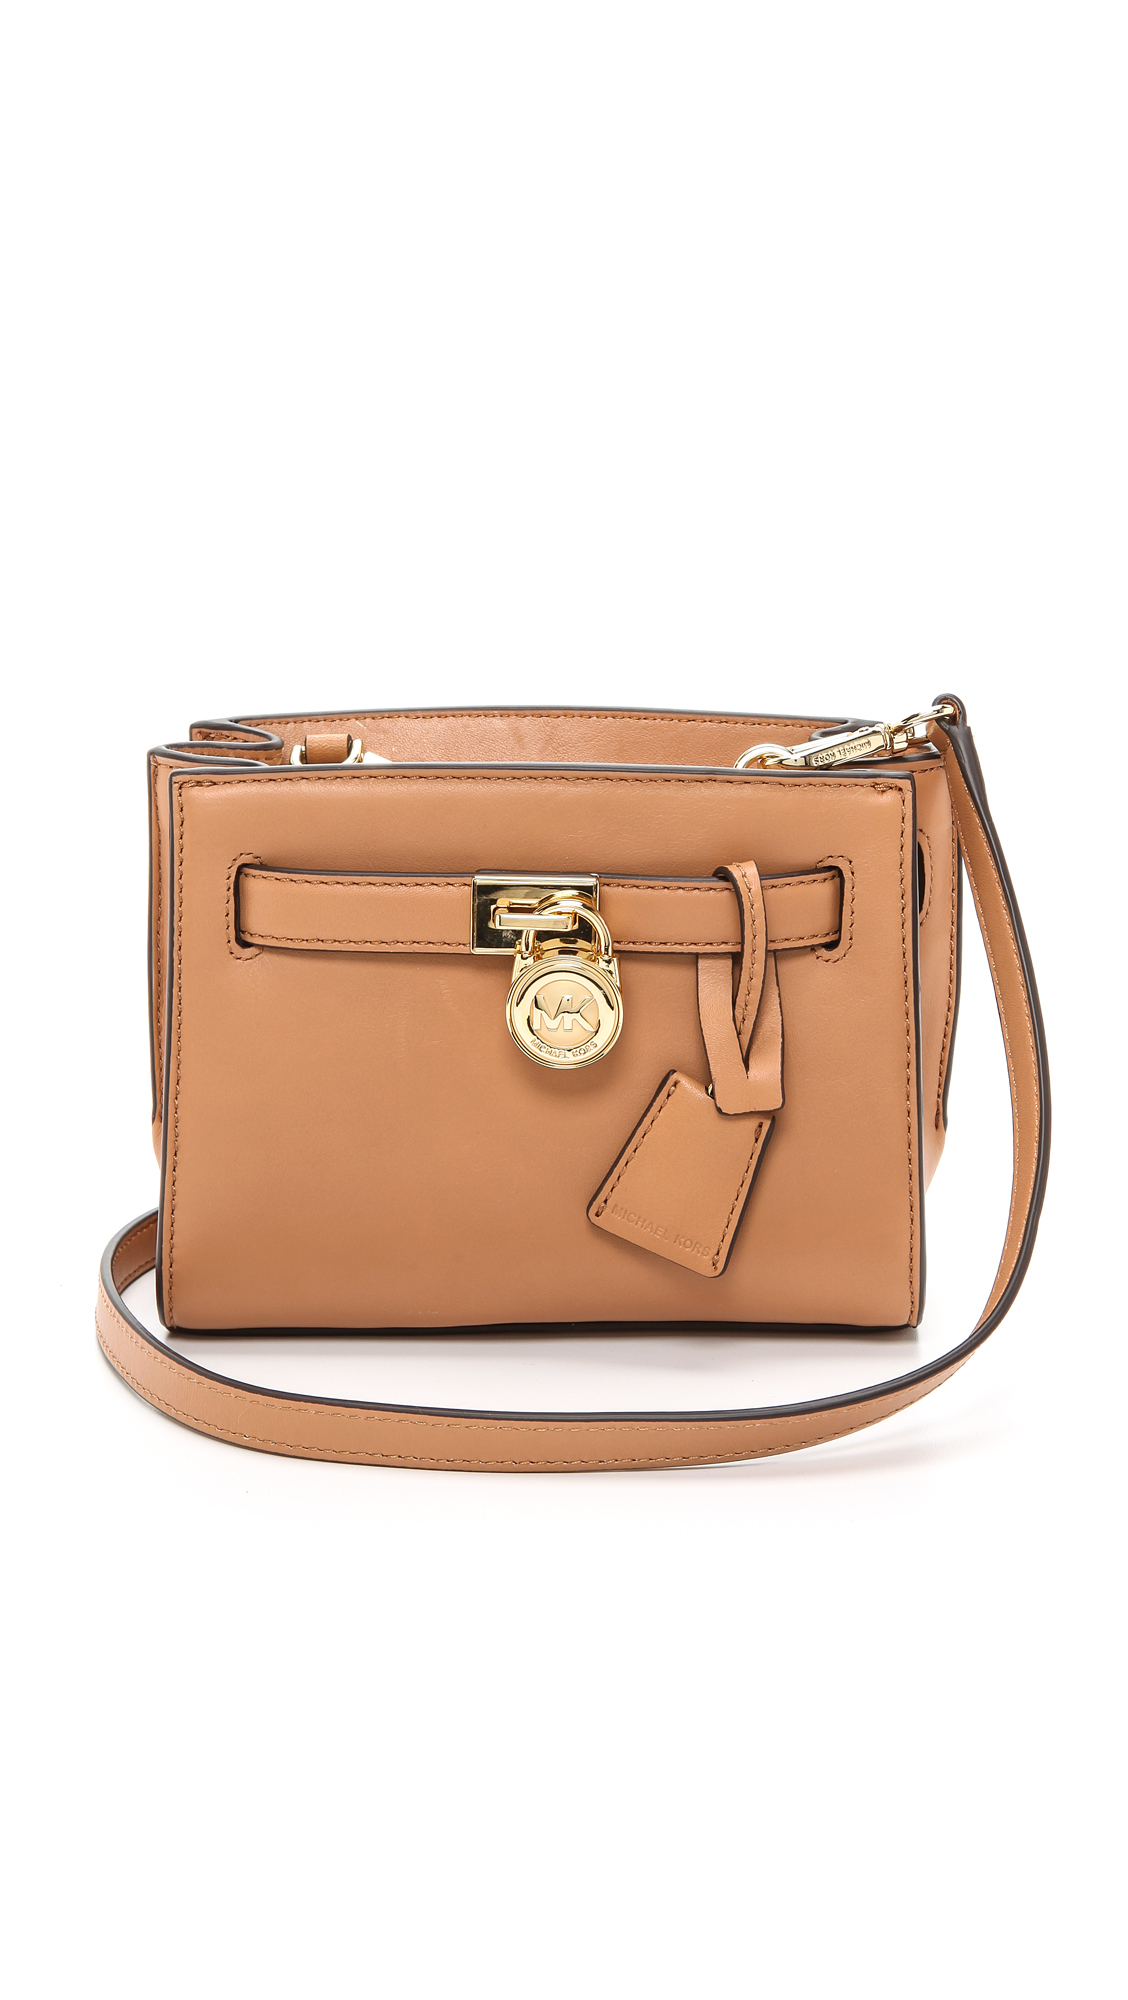 cec56525d0d5 Gallery. Previously sold at: Shopbop · Women's Michael By Michael Kors  Hamilton